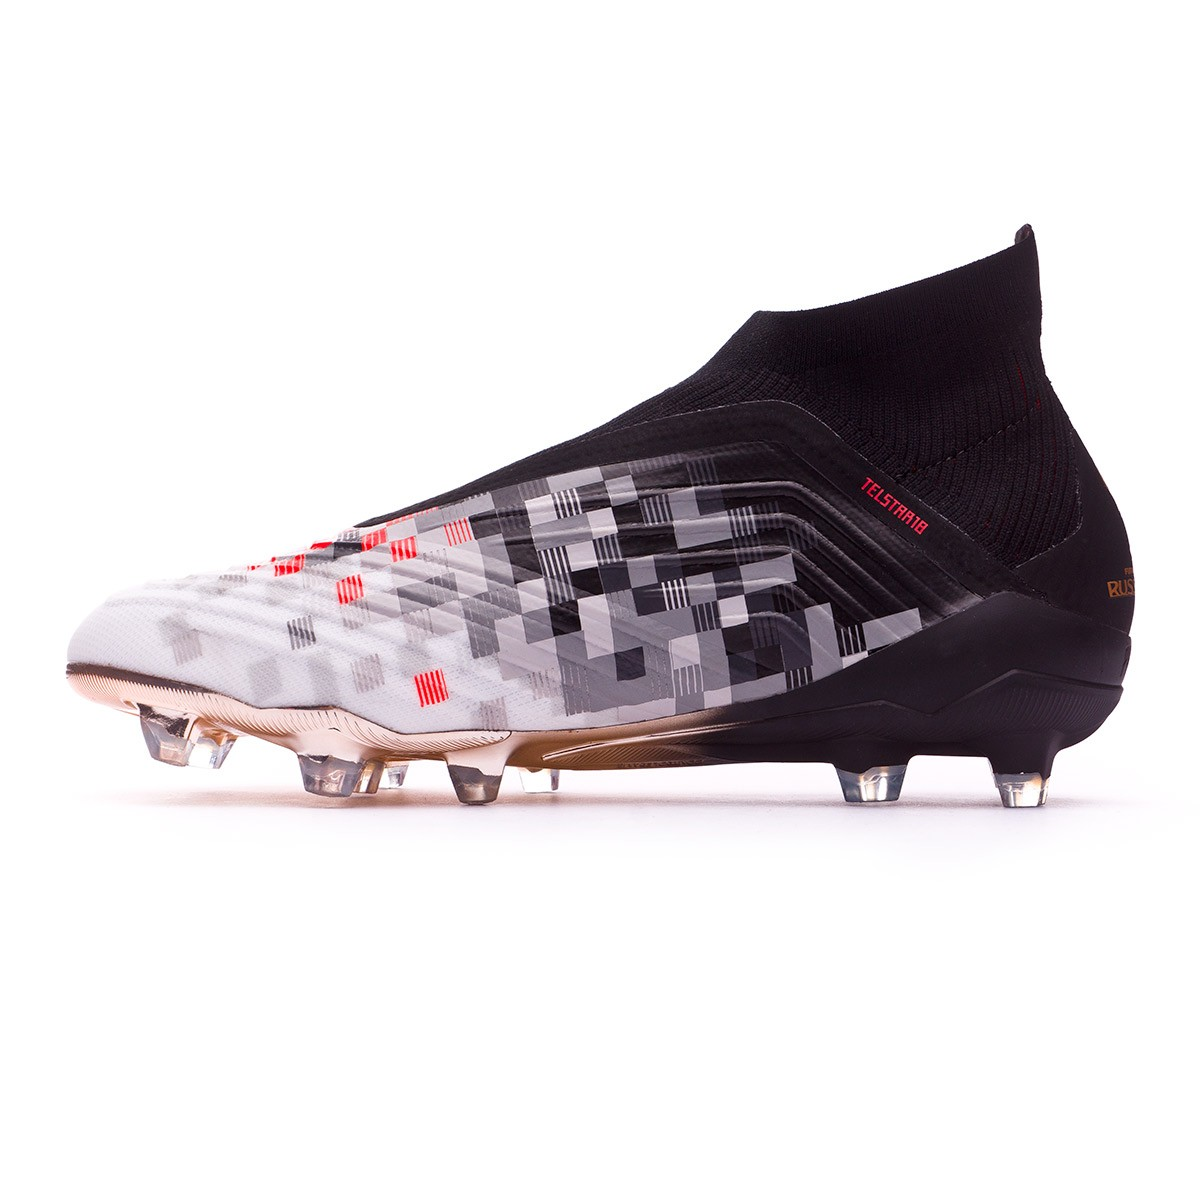 online store 4c5f6 6474e Boot adidas Telstar Predator 18+ Black-Copper metallic-Solar grey ...